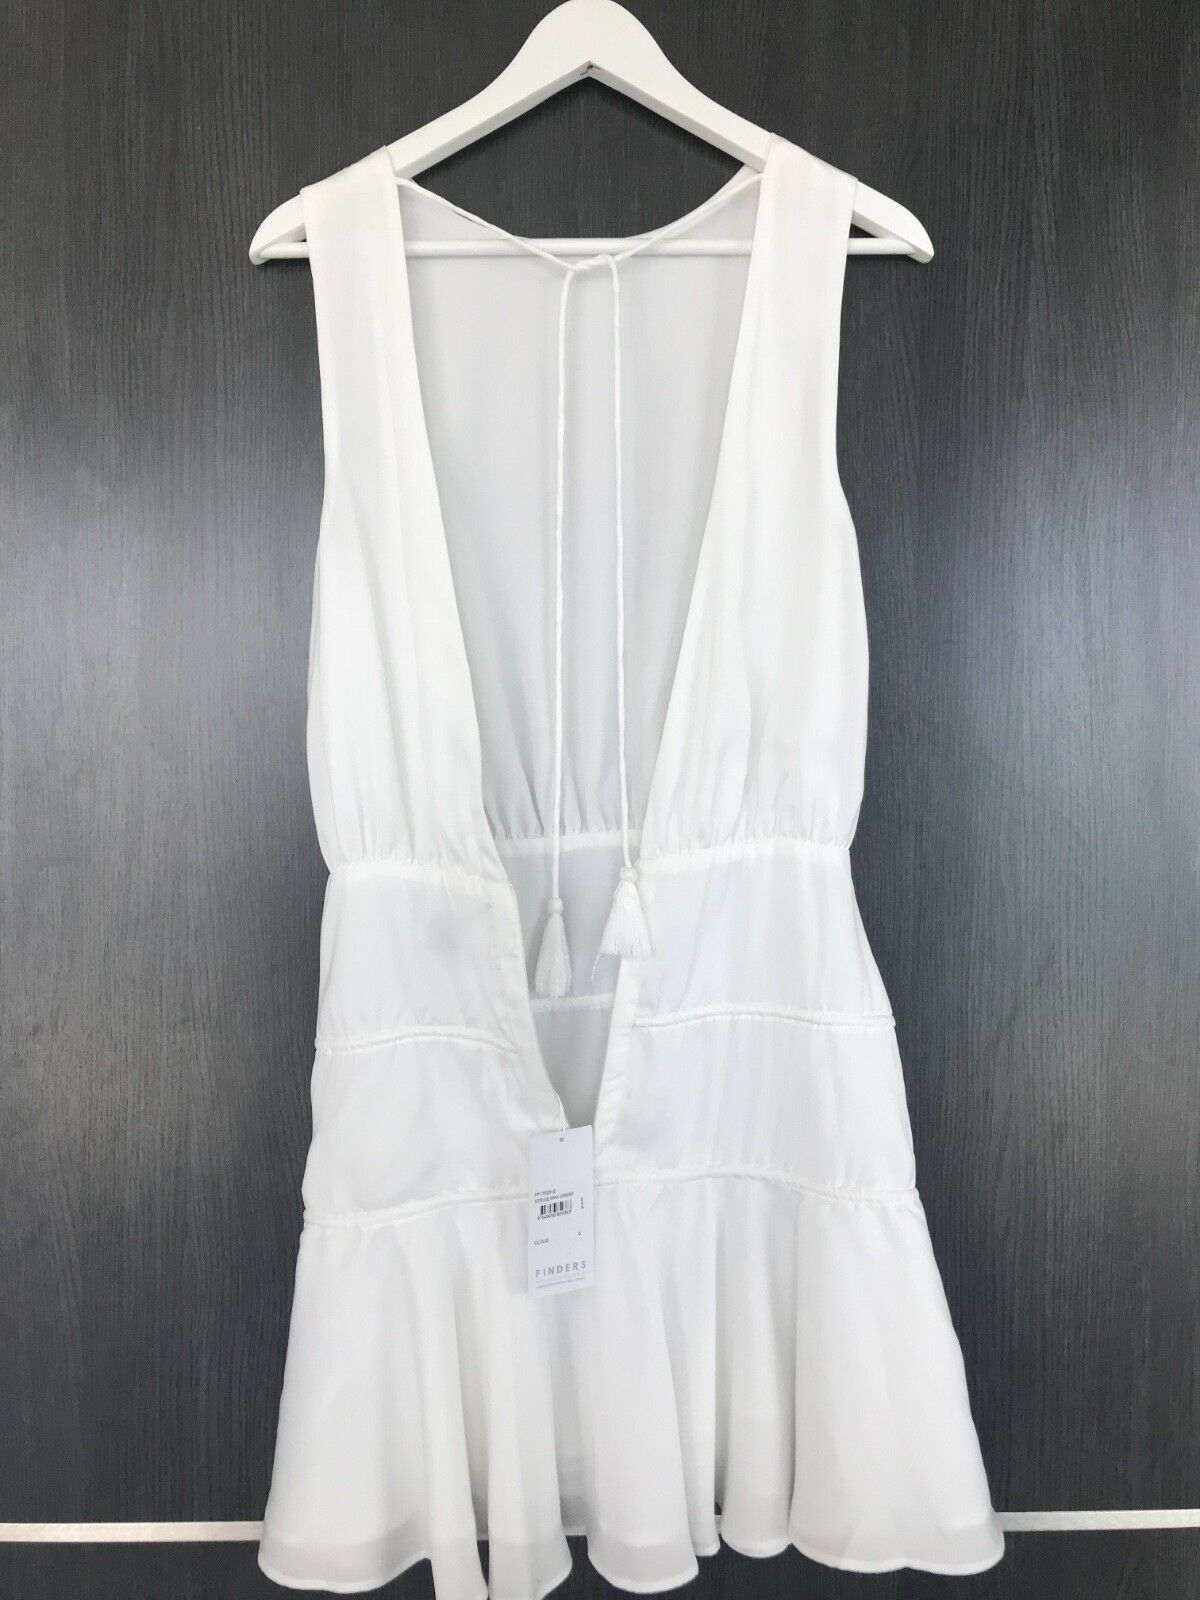 Dress Finders Keepers Keepers Keepers white dress size small 5d6ec2